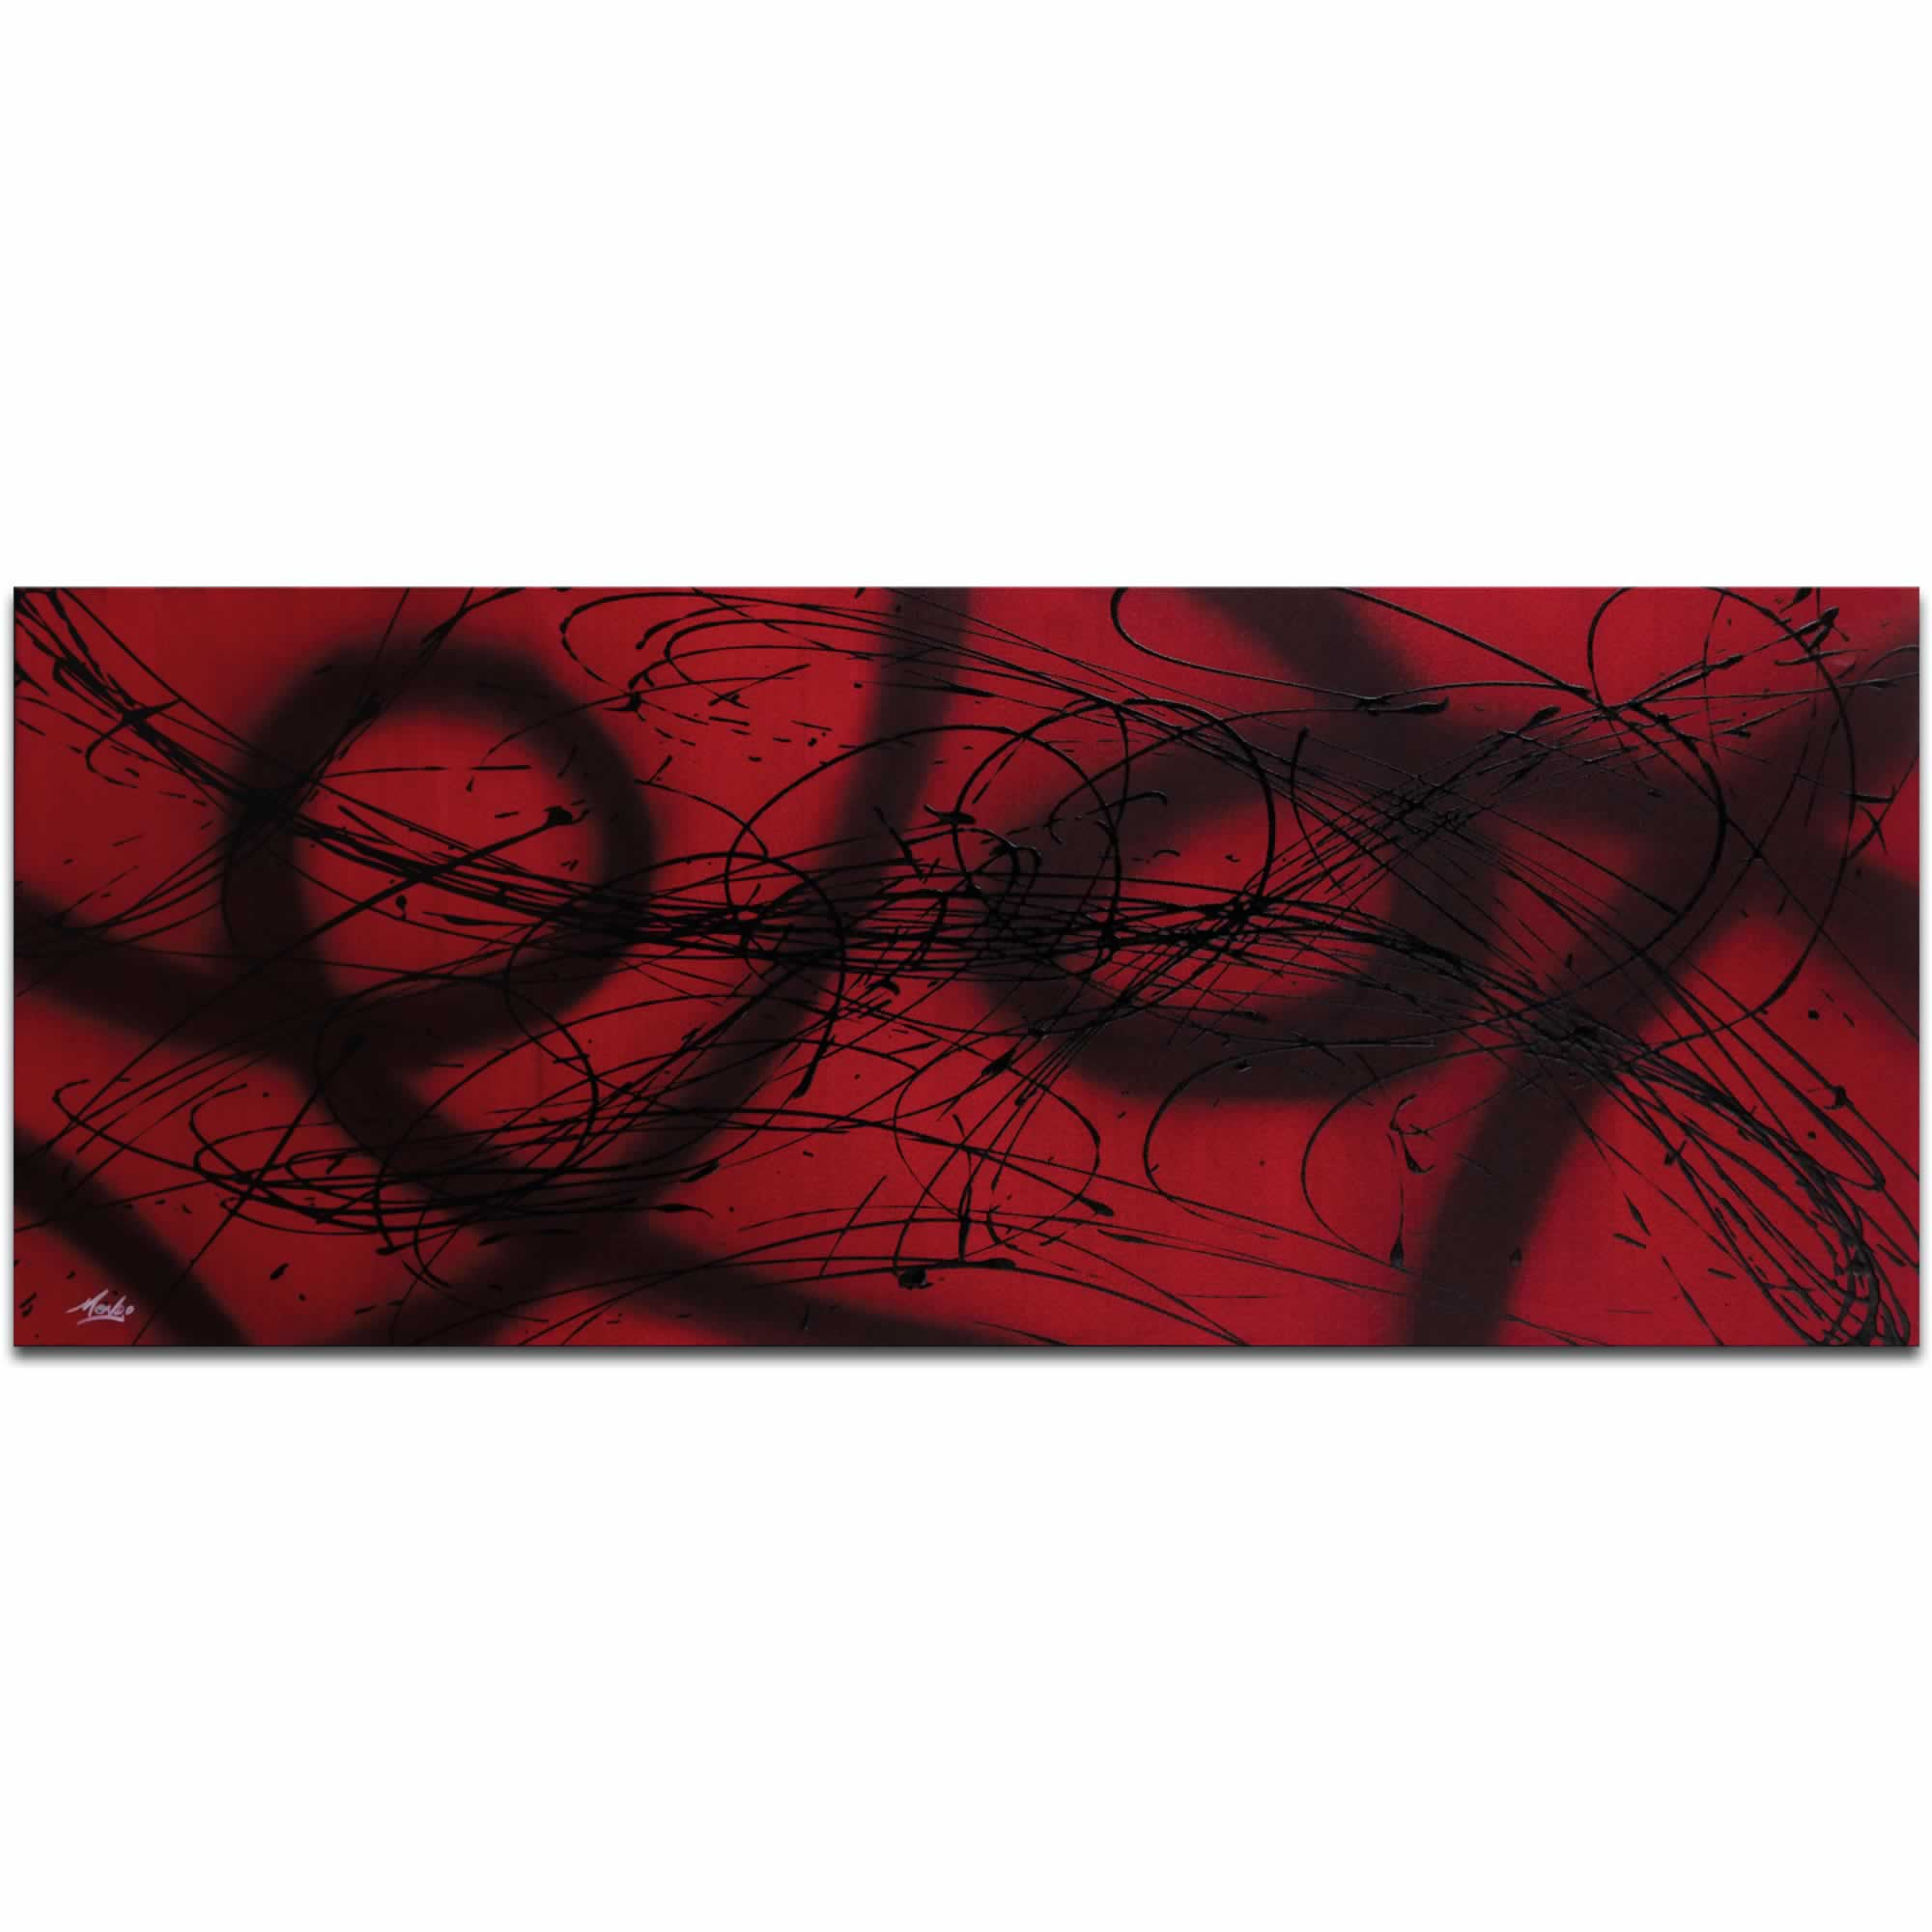 Connected - Black & Deep Red Painting, Modern Abstract Art, Contemporary Urban Decor